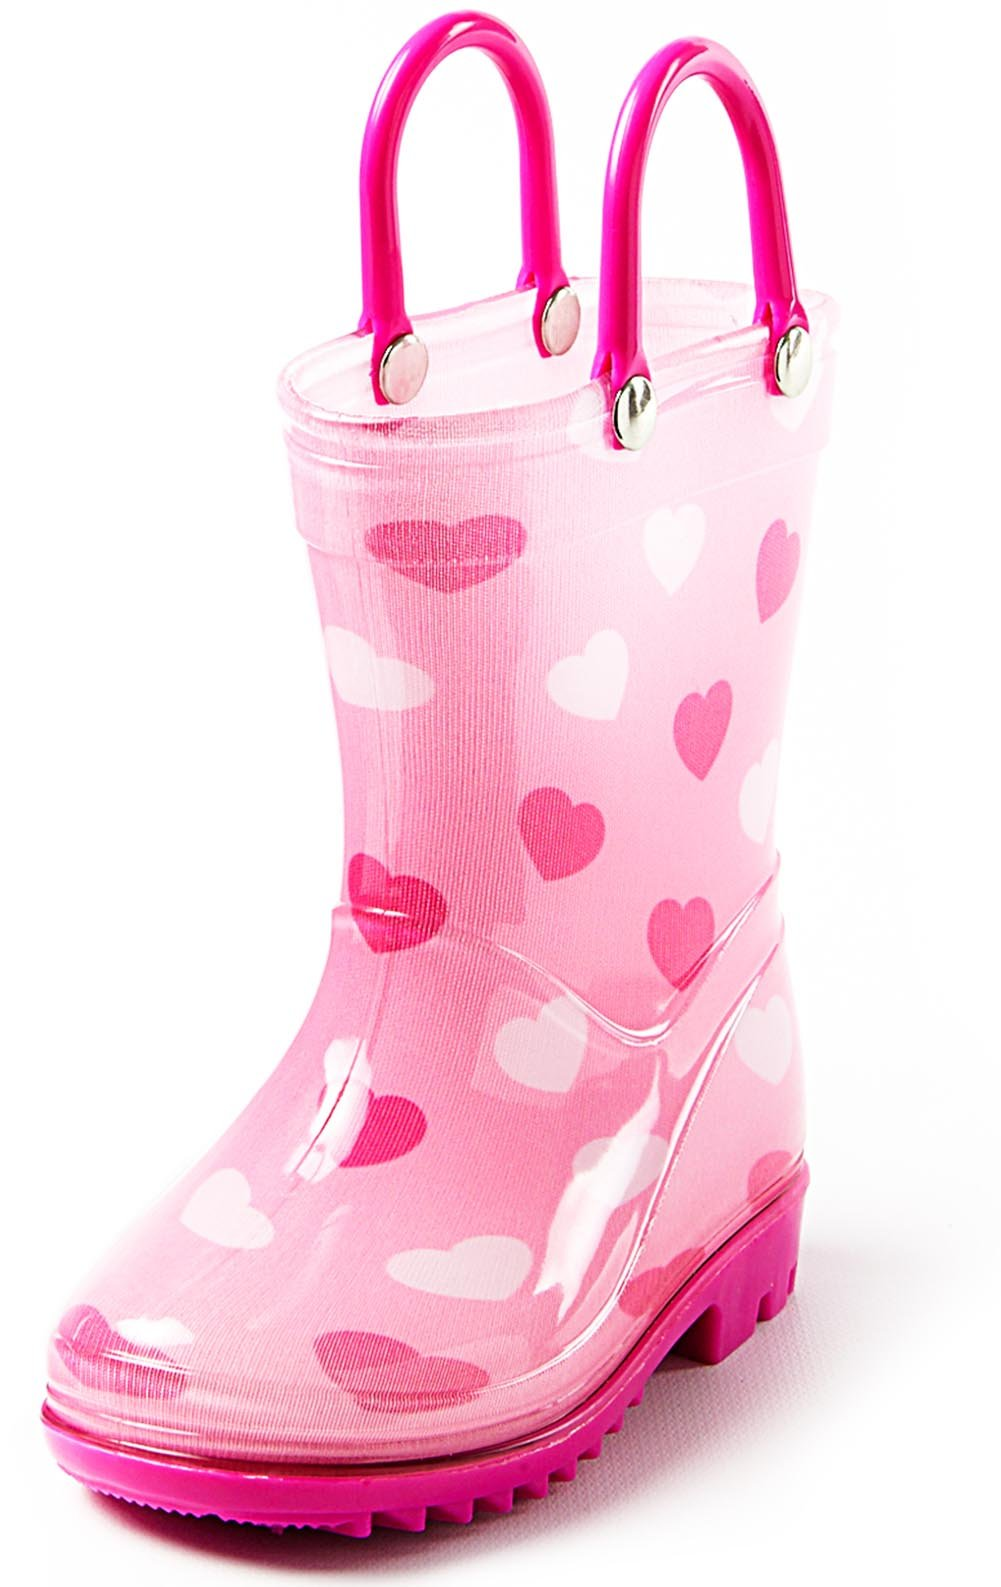 Puddle Play Toddler and Kids Rain Boots with Easy On Handles – Size 9 - Girls Pink Hearts Design